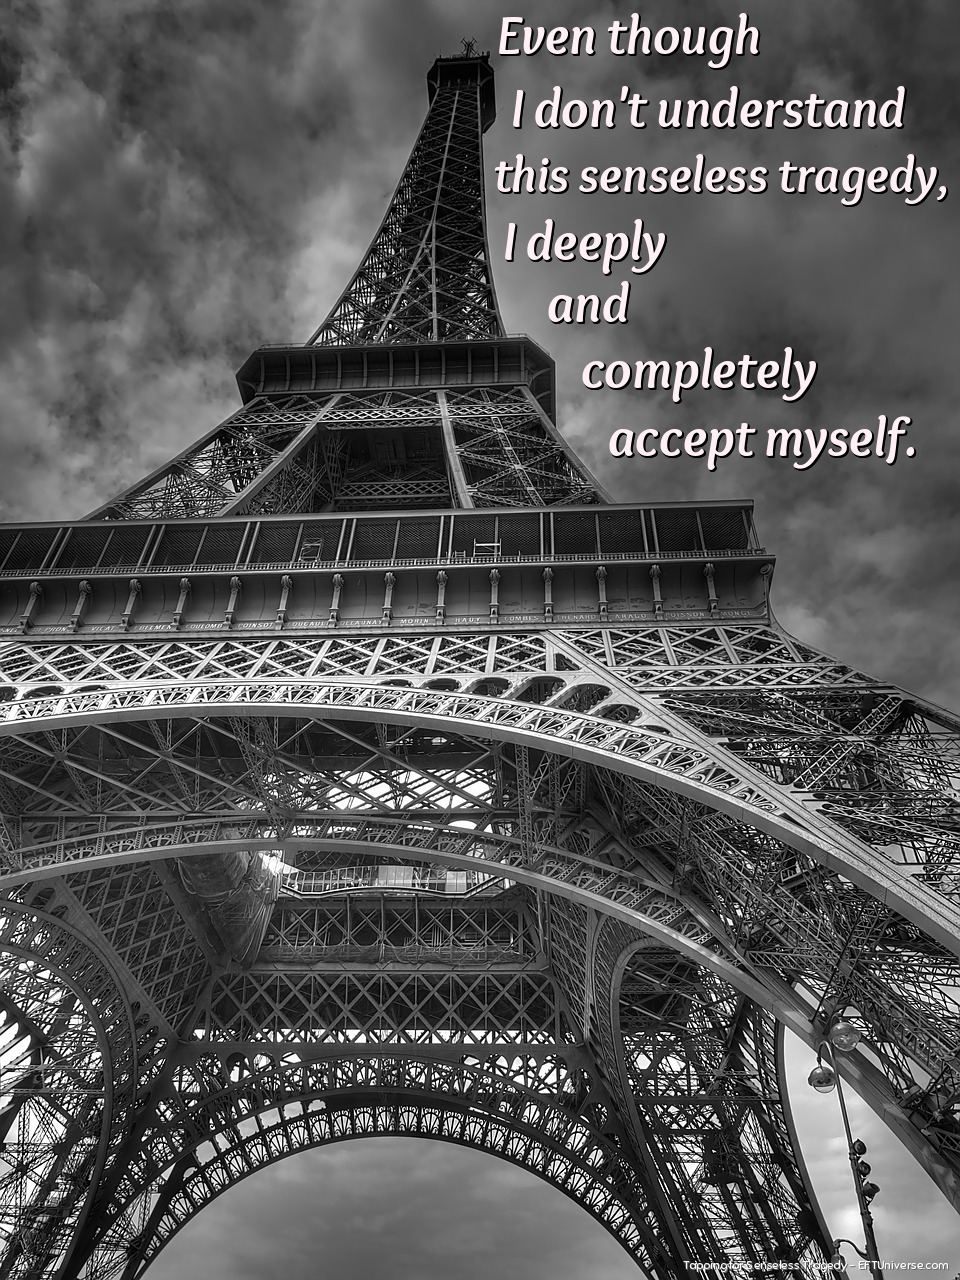 EFT Tapping statements for Senseless Tragedies